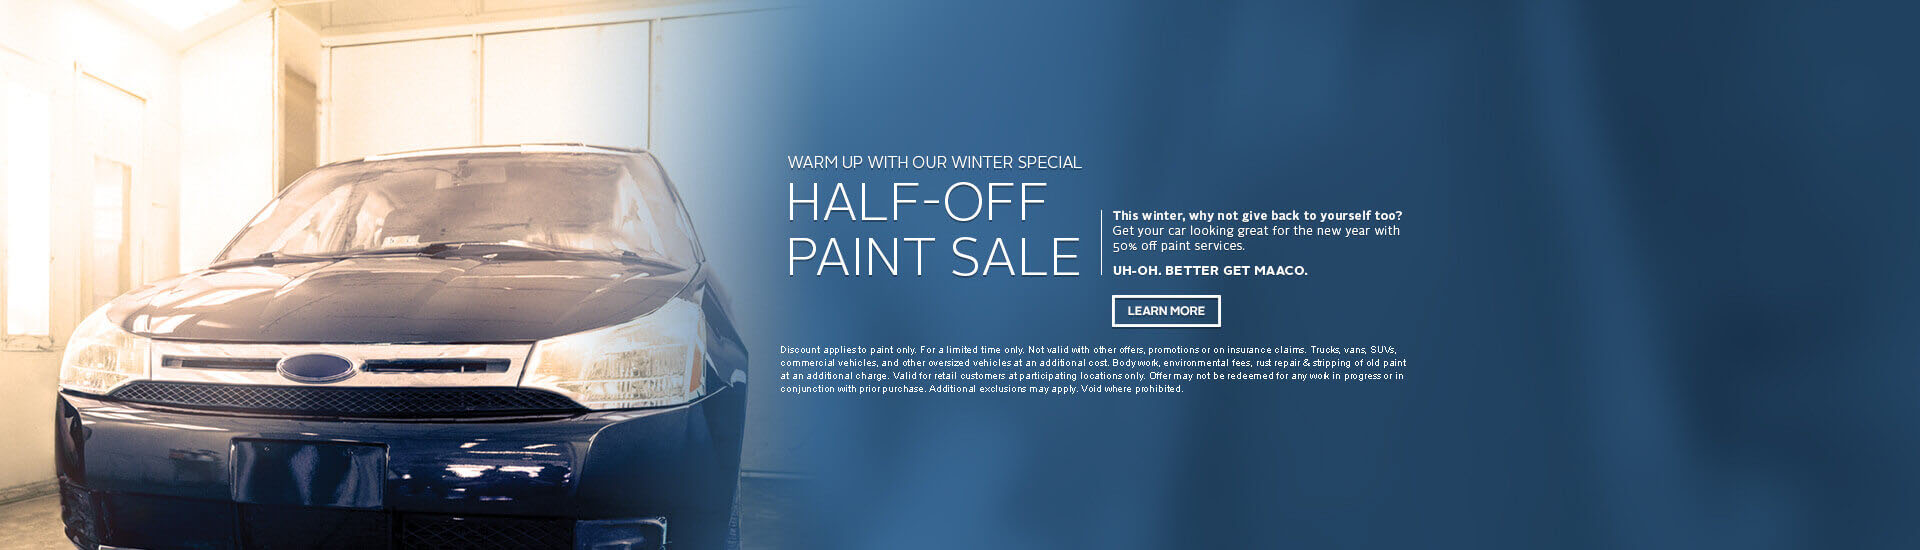 Maaco: Half-Off Paint Sale, click Learn More for further details.